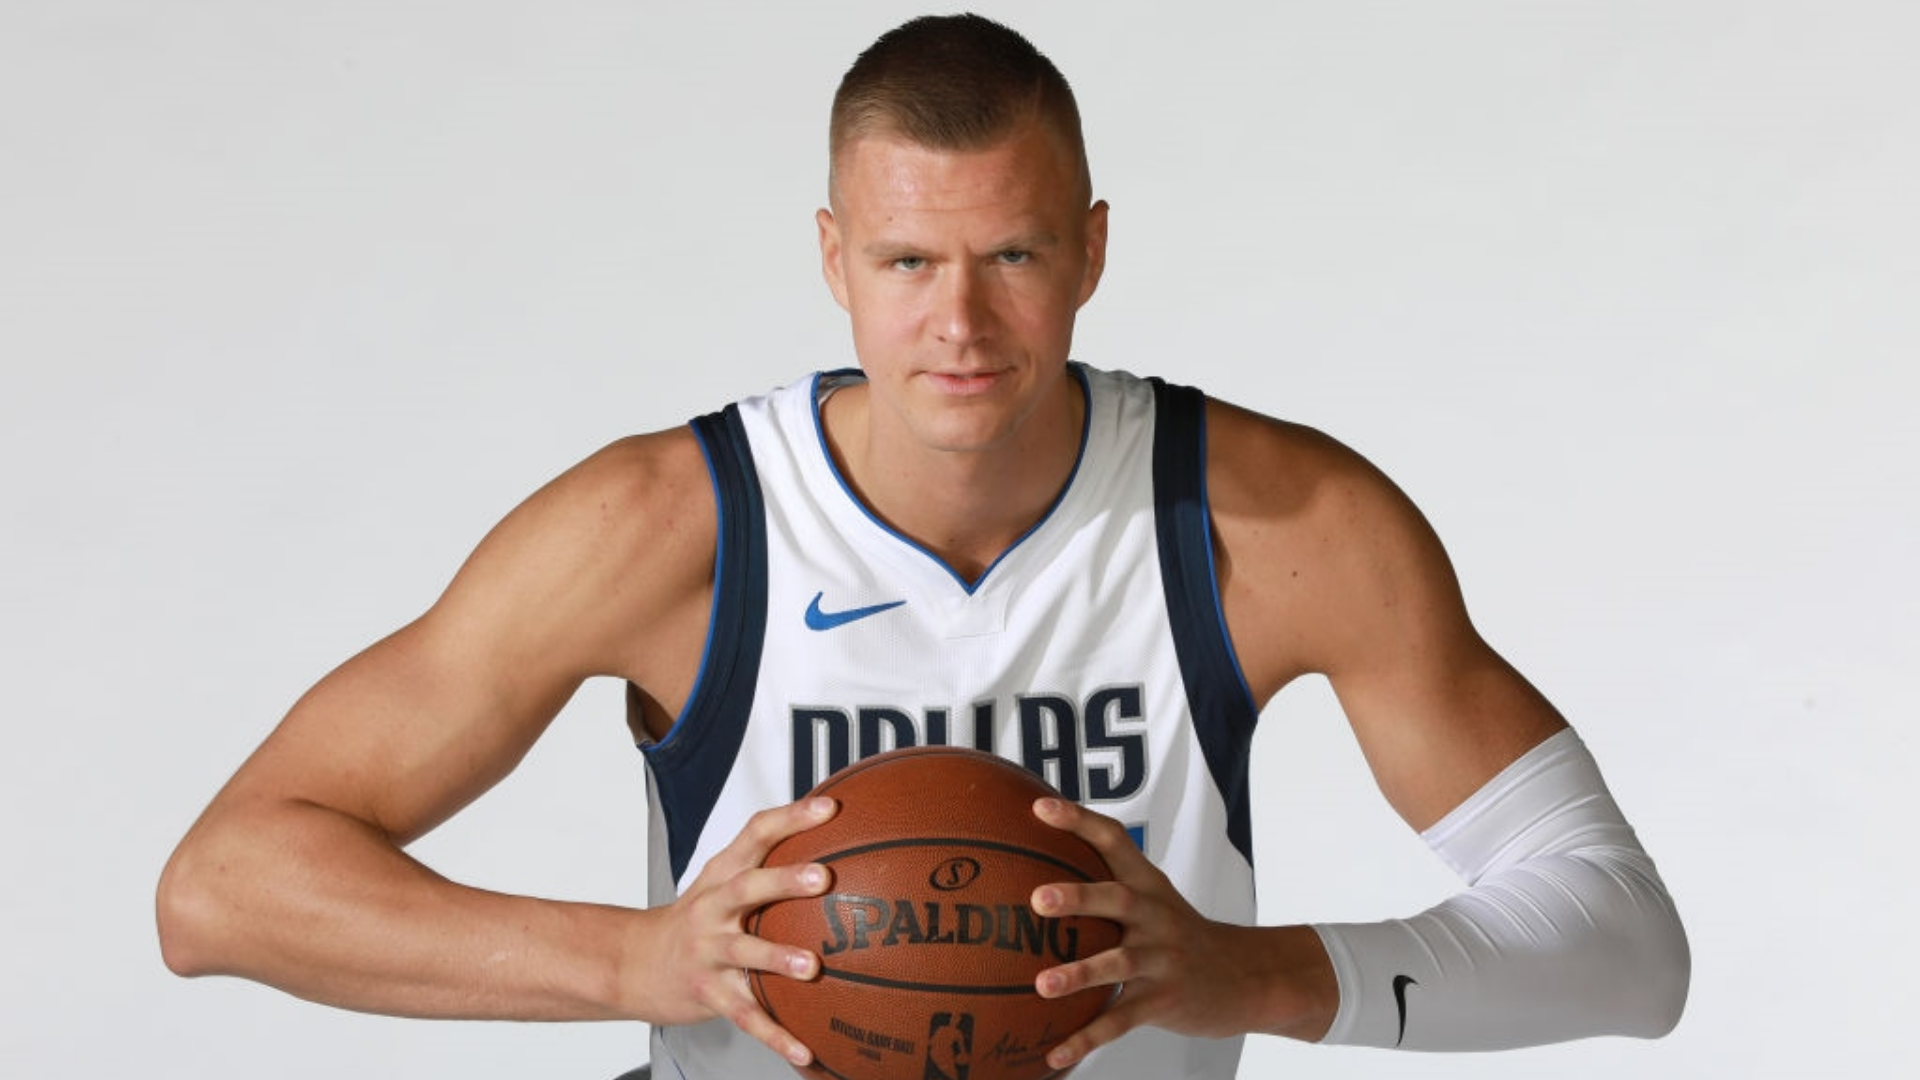 NBA Season Preview 2019-20: Can Luka Doncic and Kristaps Porzingis lead the Dallas Mavericks back to the playoffs?